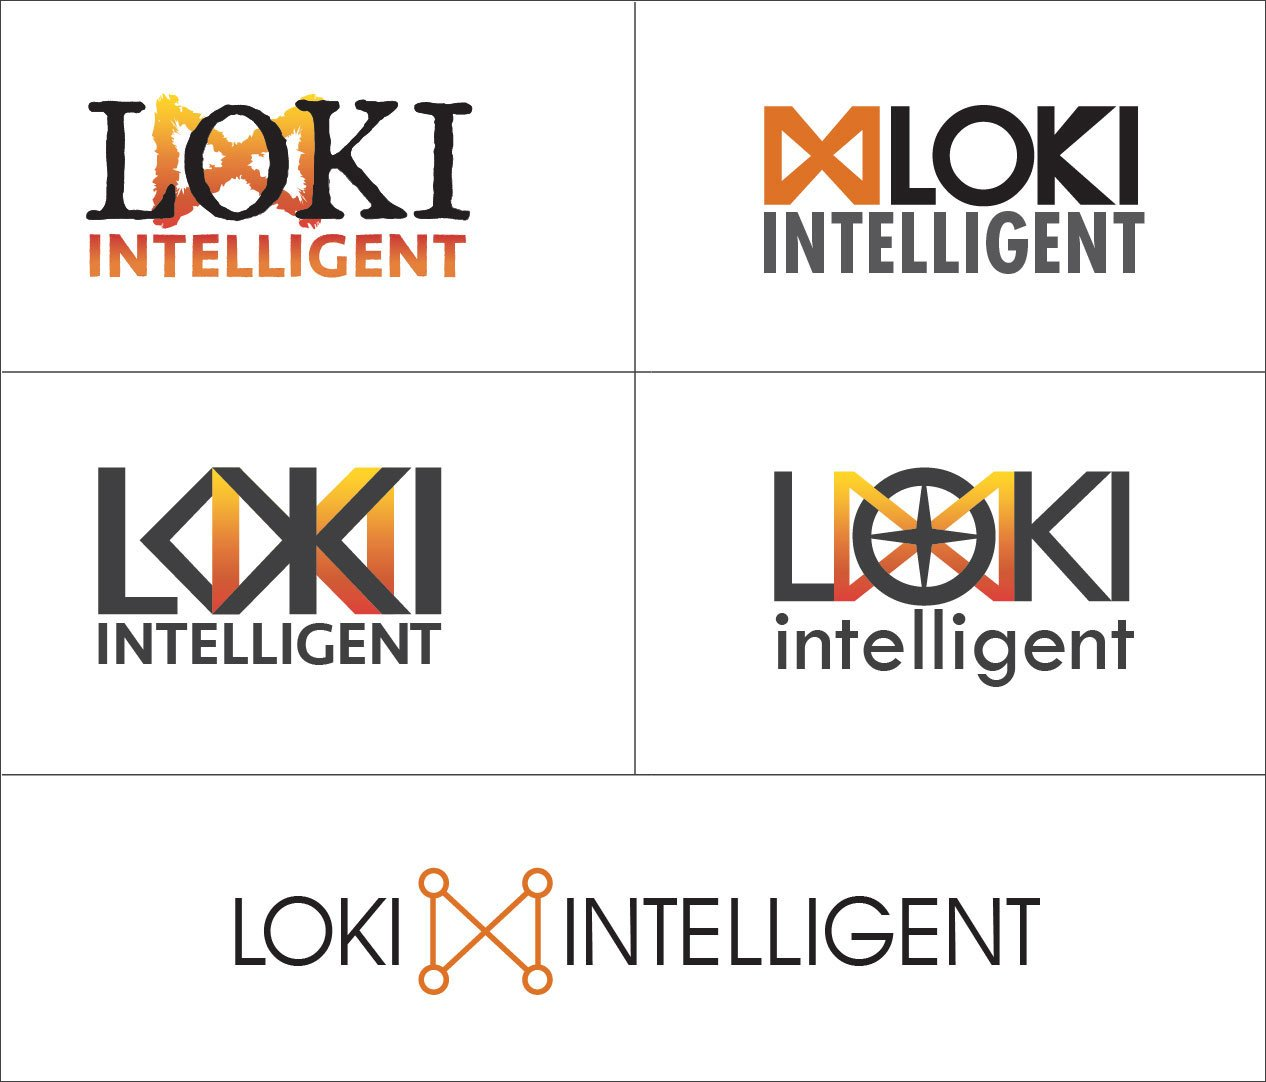 Loki Intelligent logo design concepts